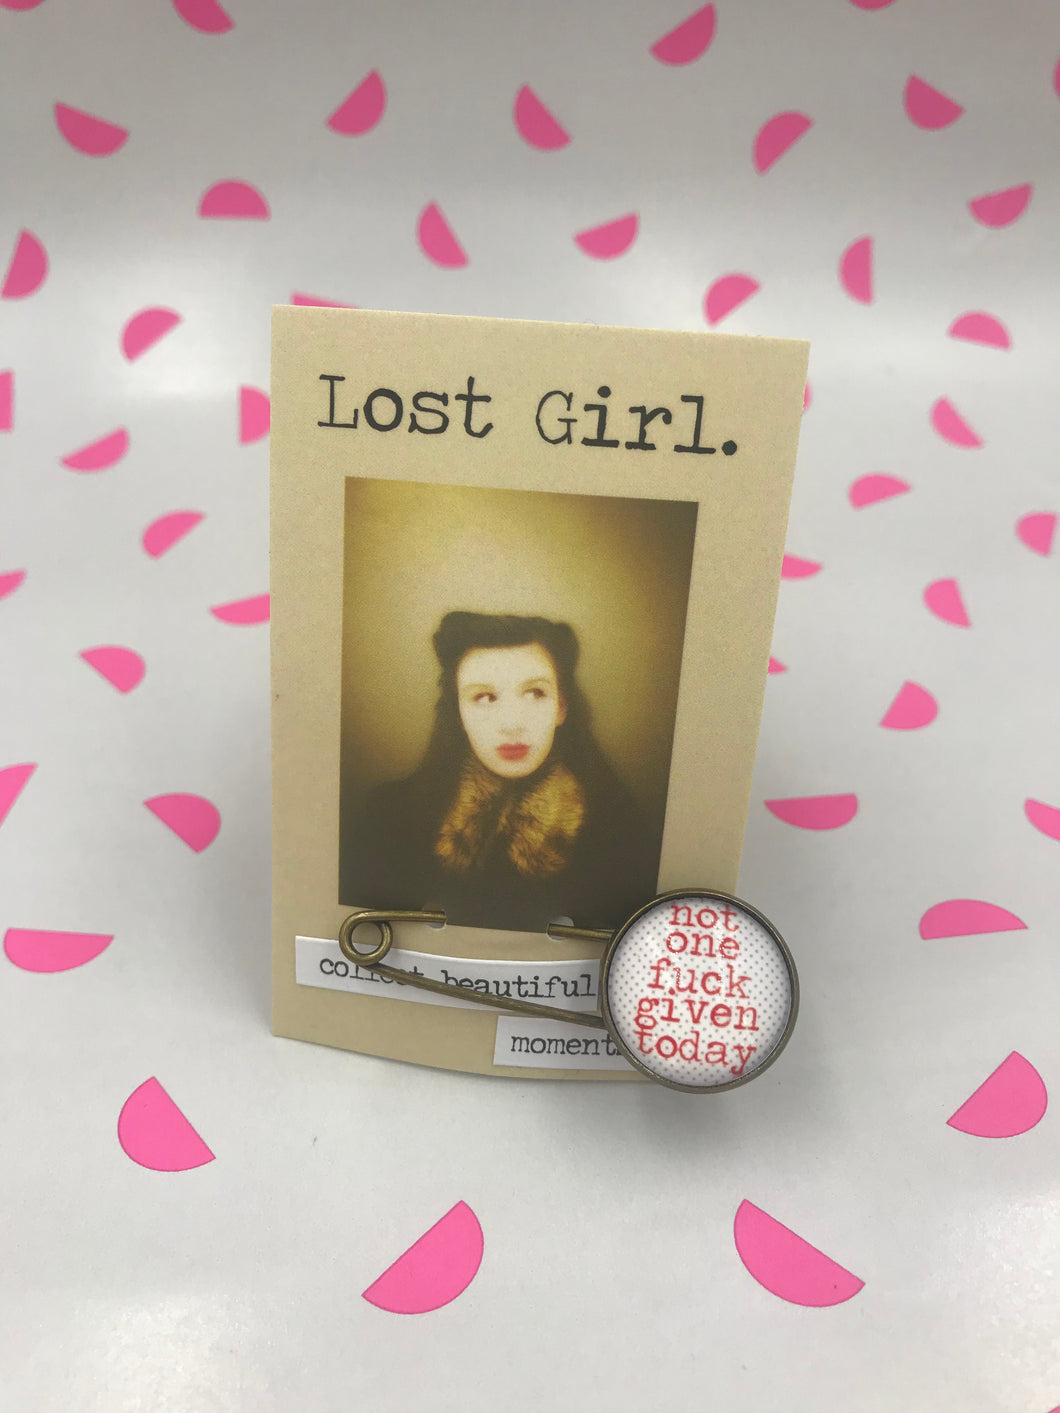 Lost Girl Pins - Not One F*** Given Today